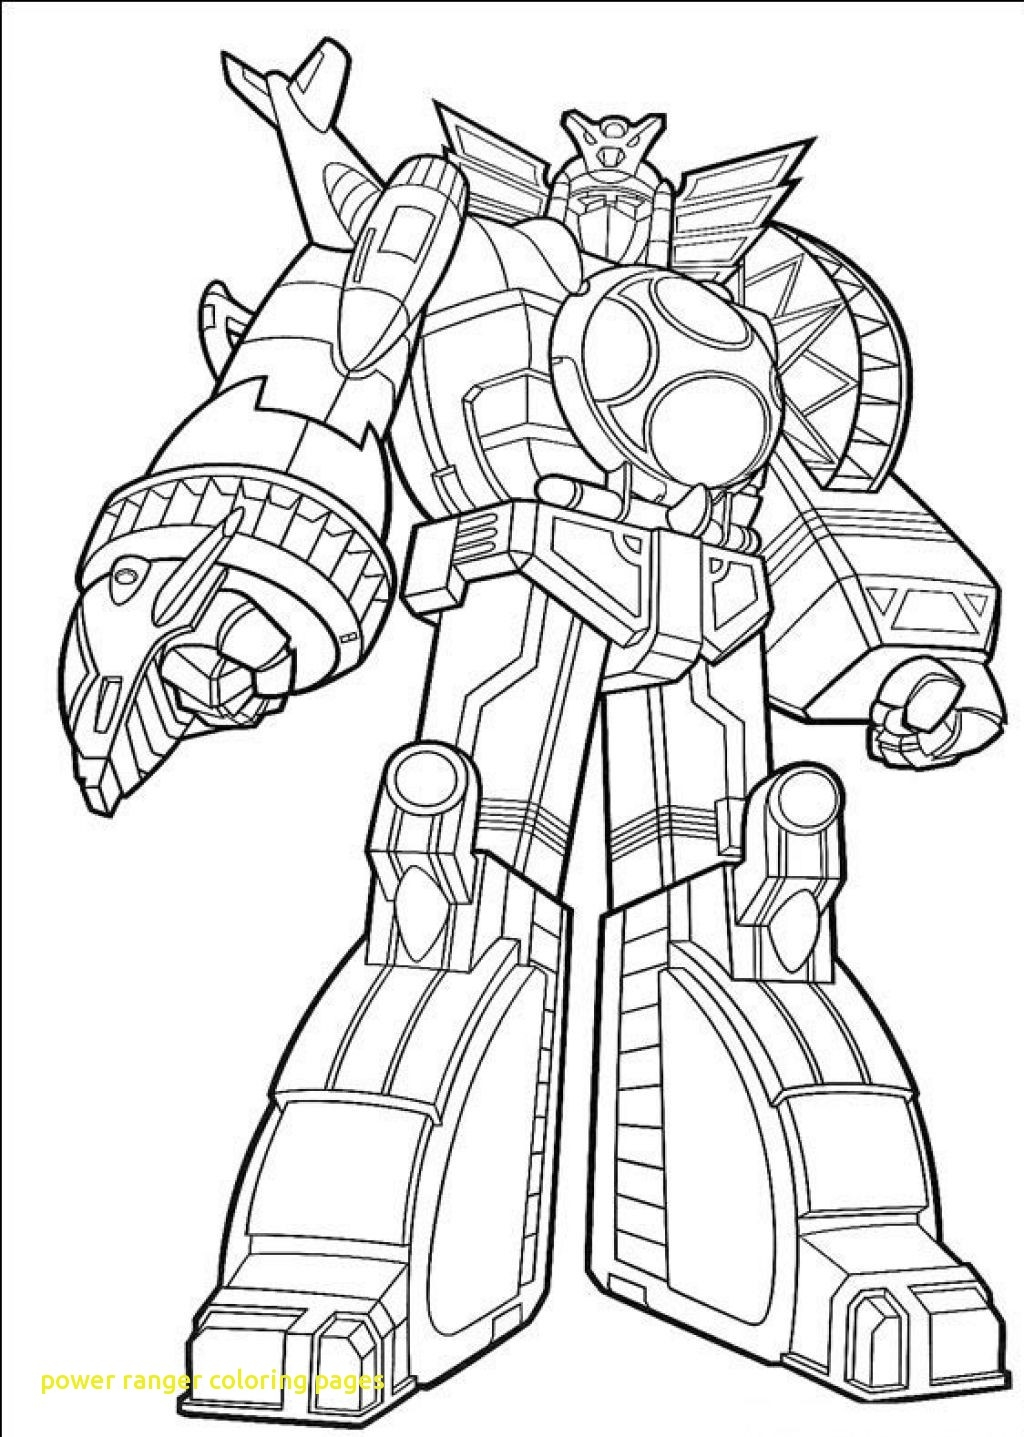 Megazord Coloring Pages